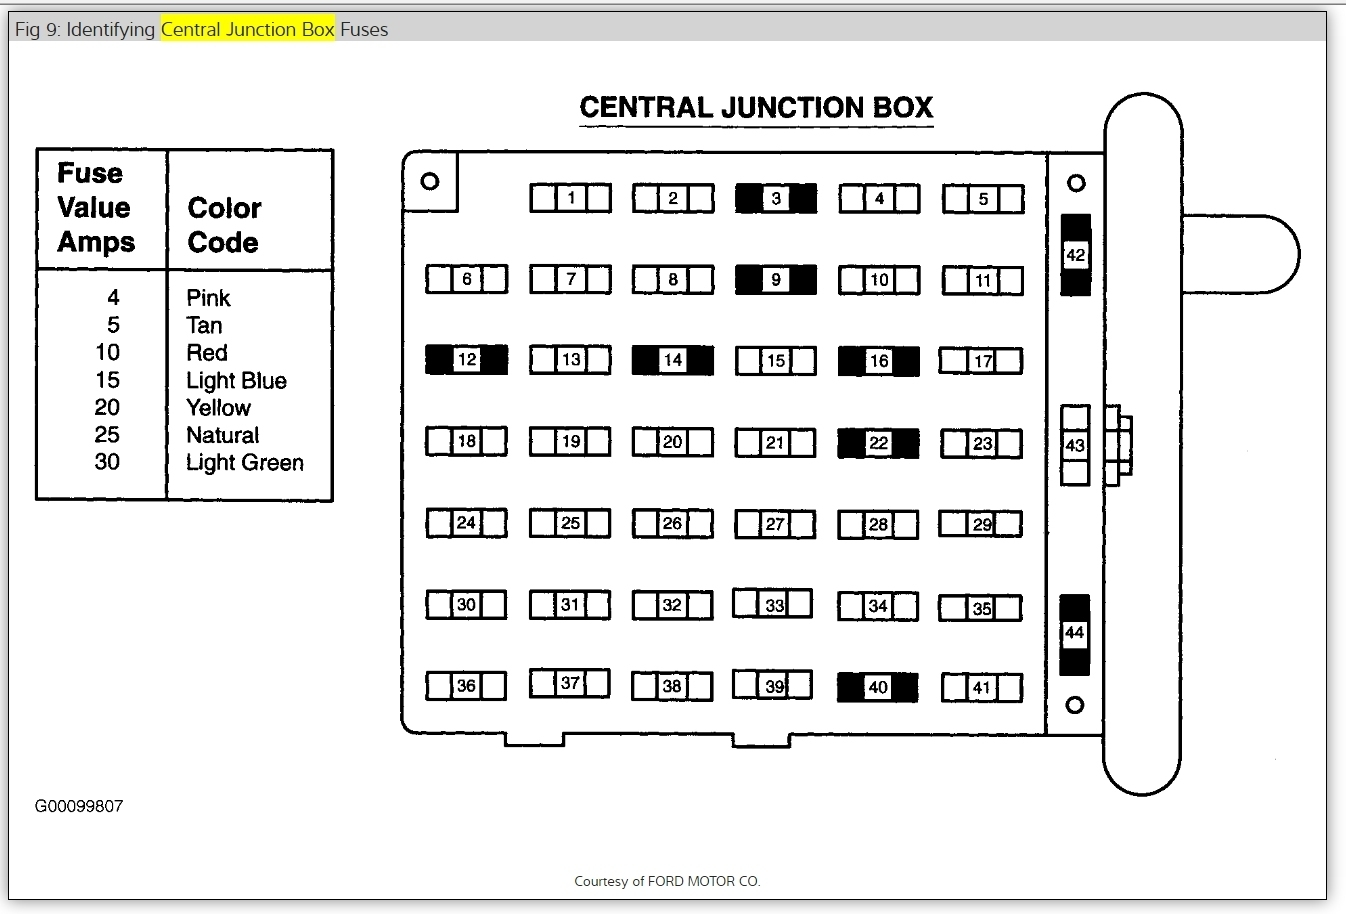 read online fuse box diagram for 2003 ford crown victoria. Black Bedroom Furniture Sets. Home Design Ideas